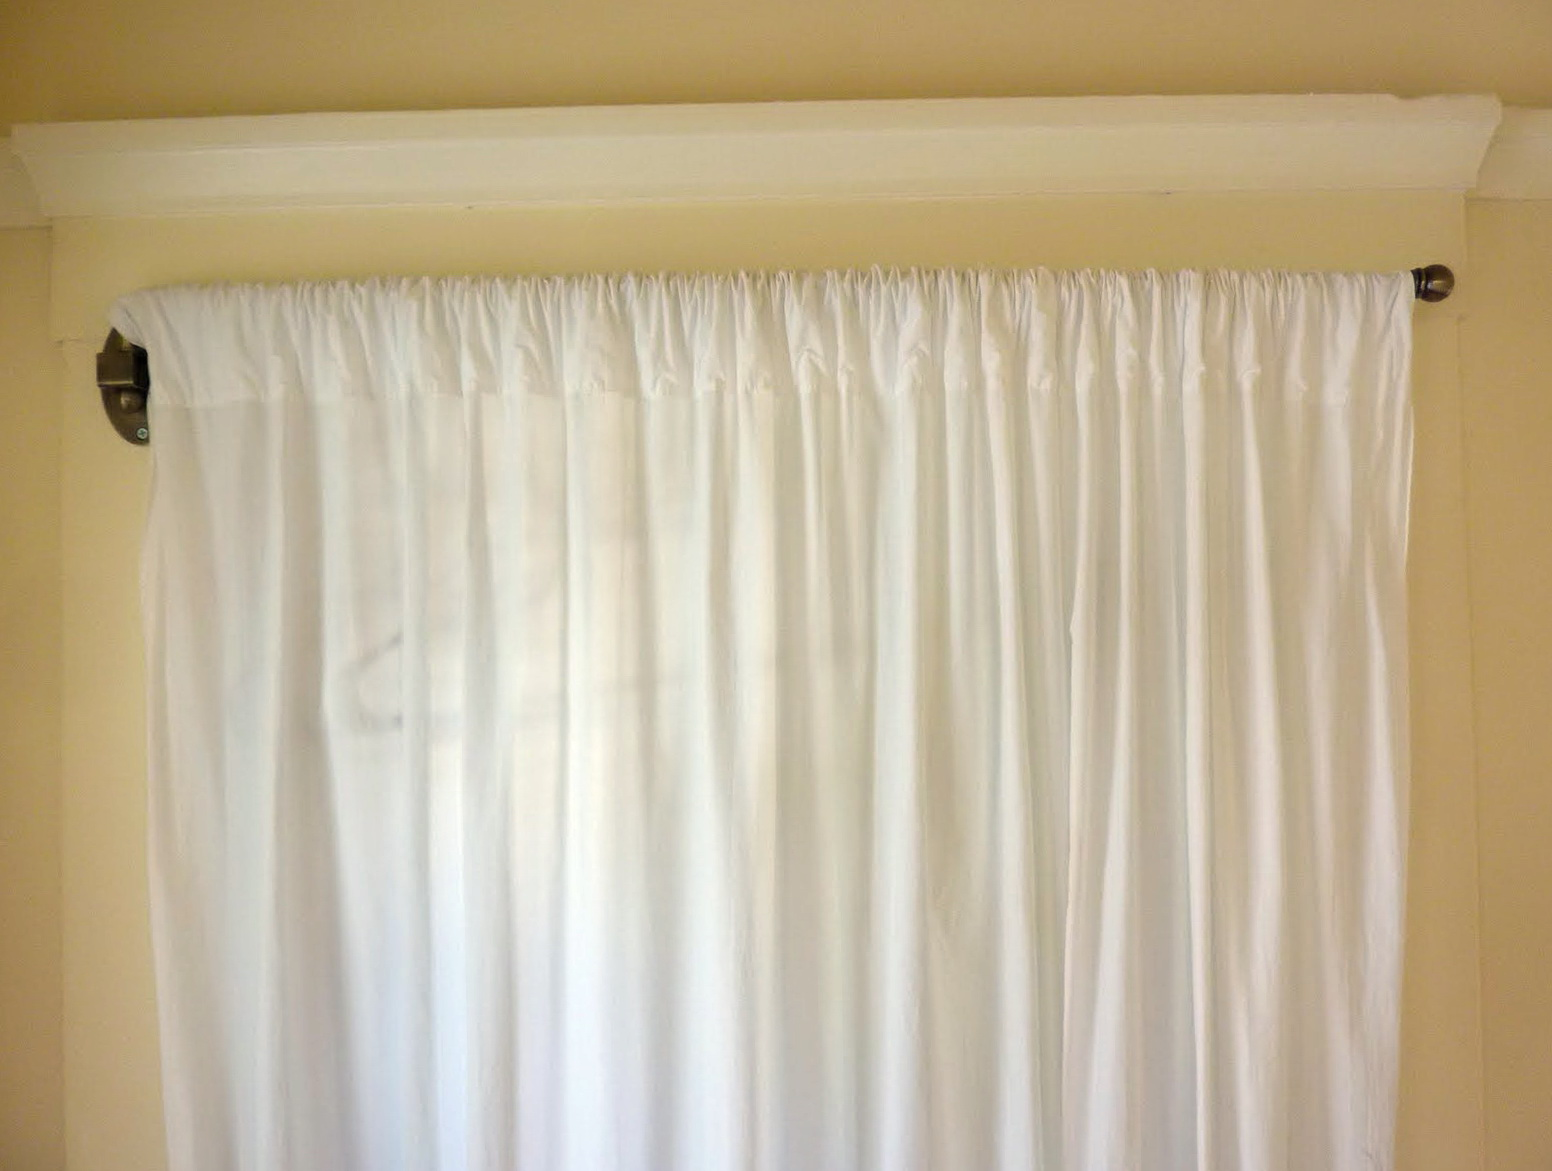 Tension Rods For Curtains Target Home Design Ideas